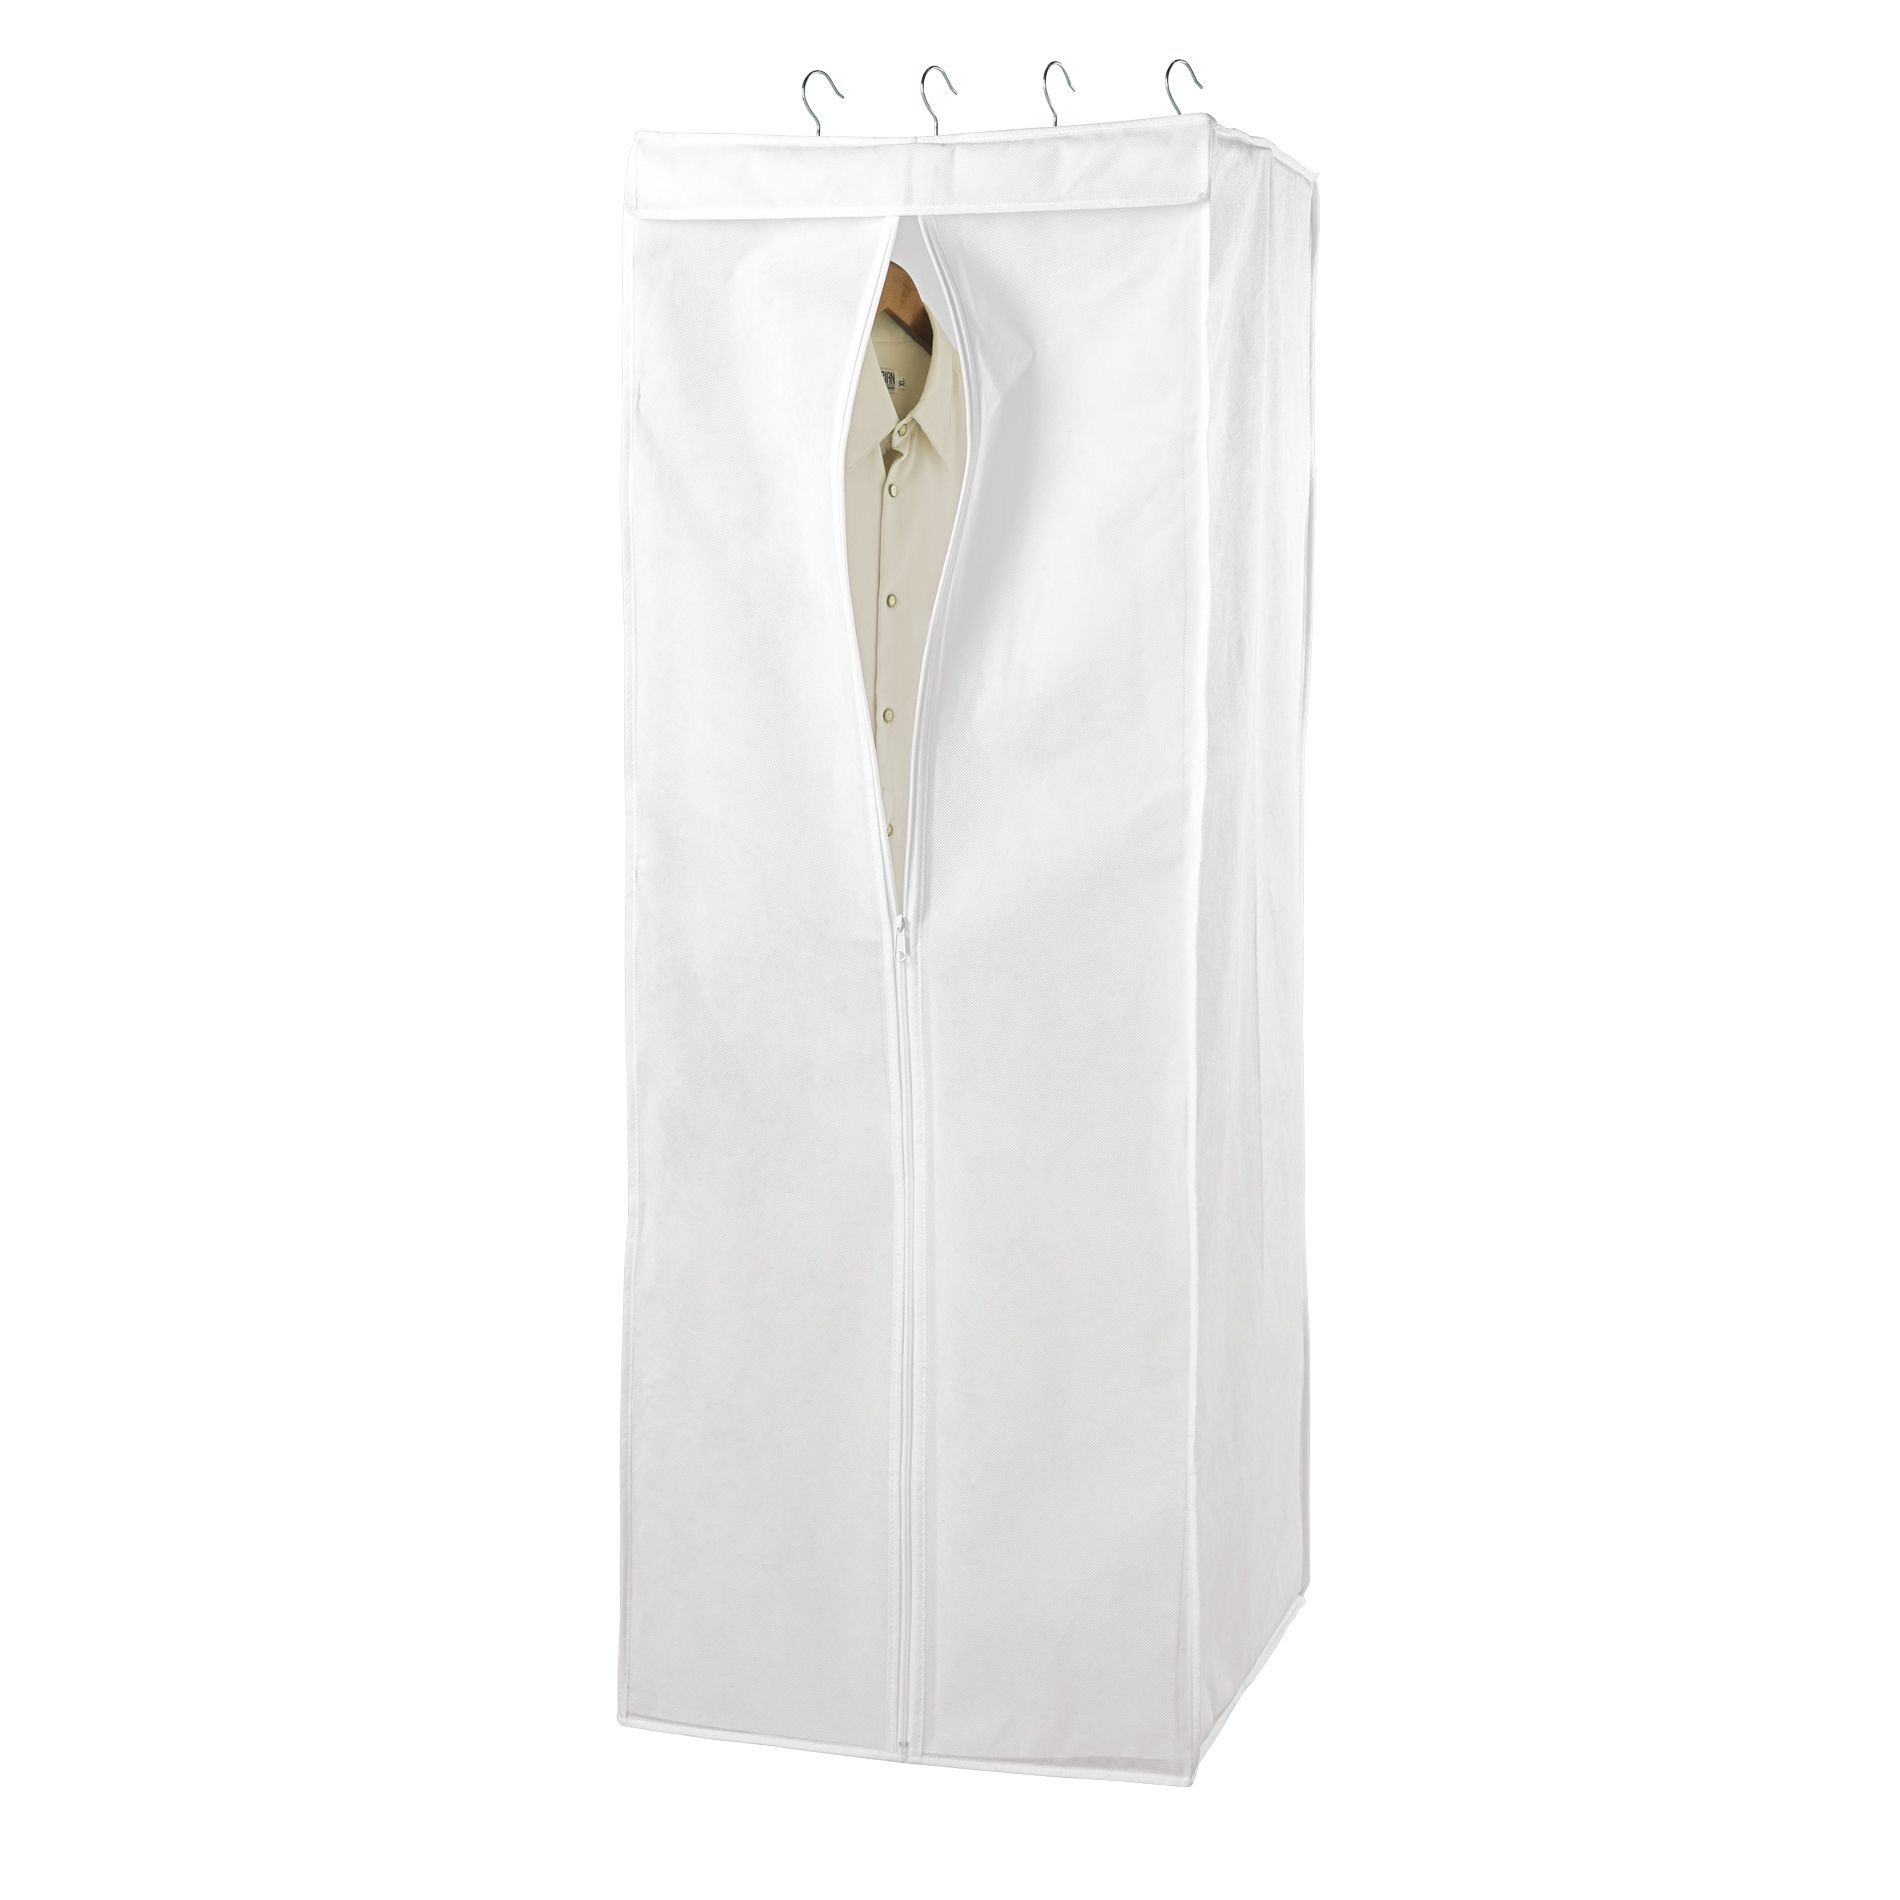 Essential Home  White Hanging Multi